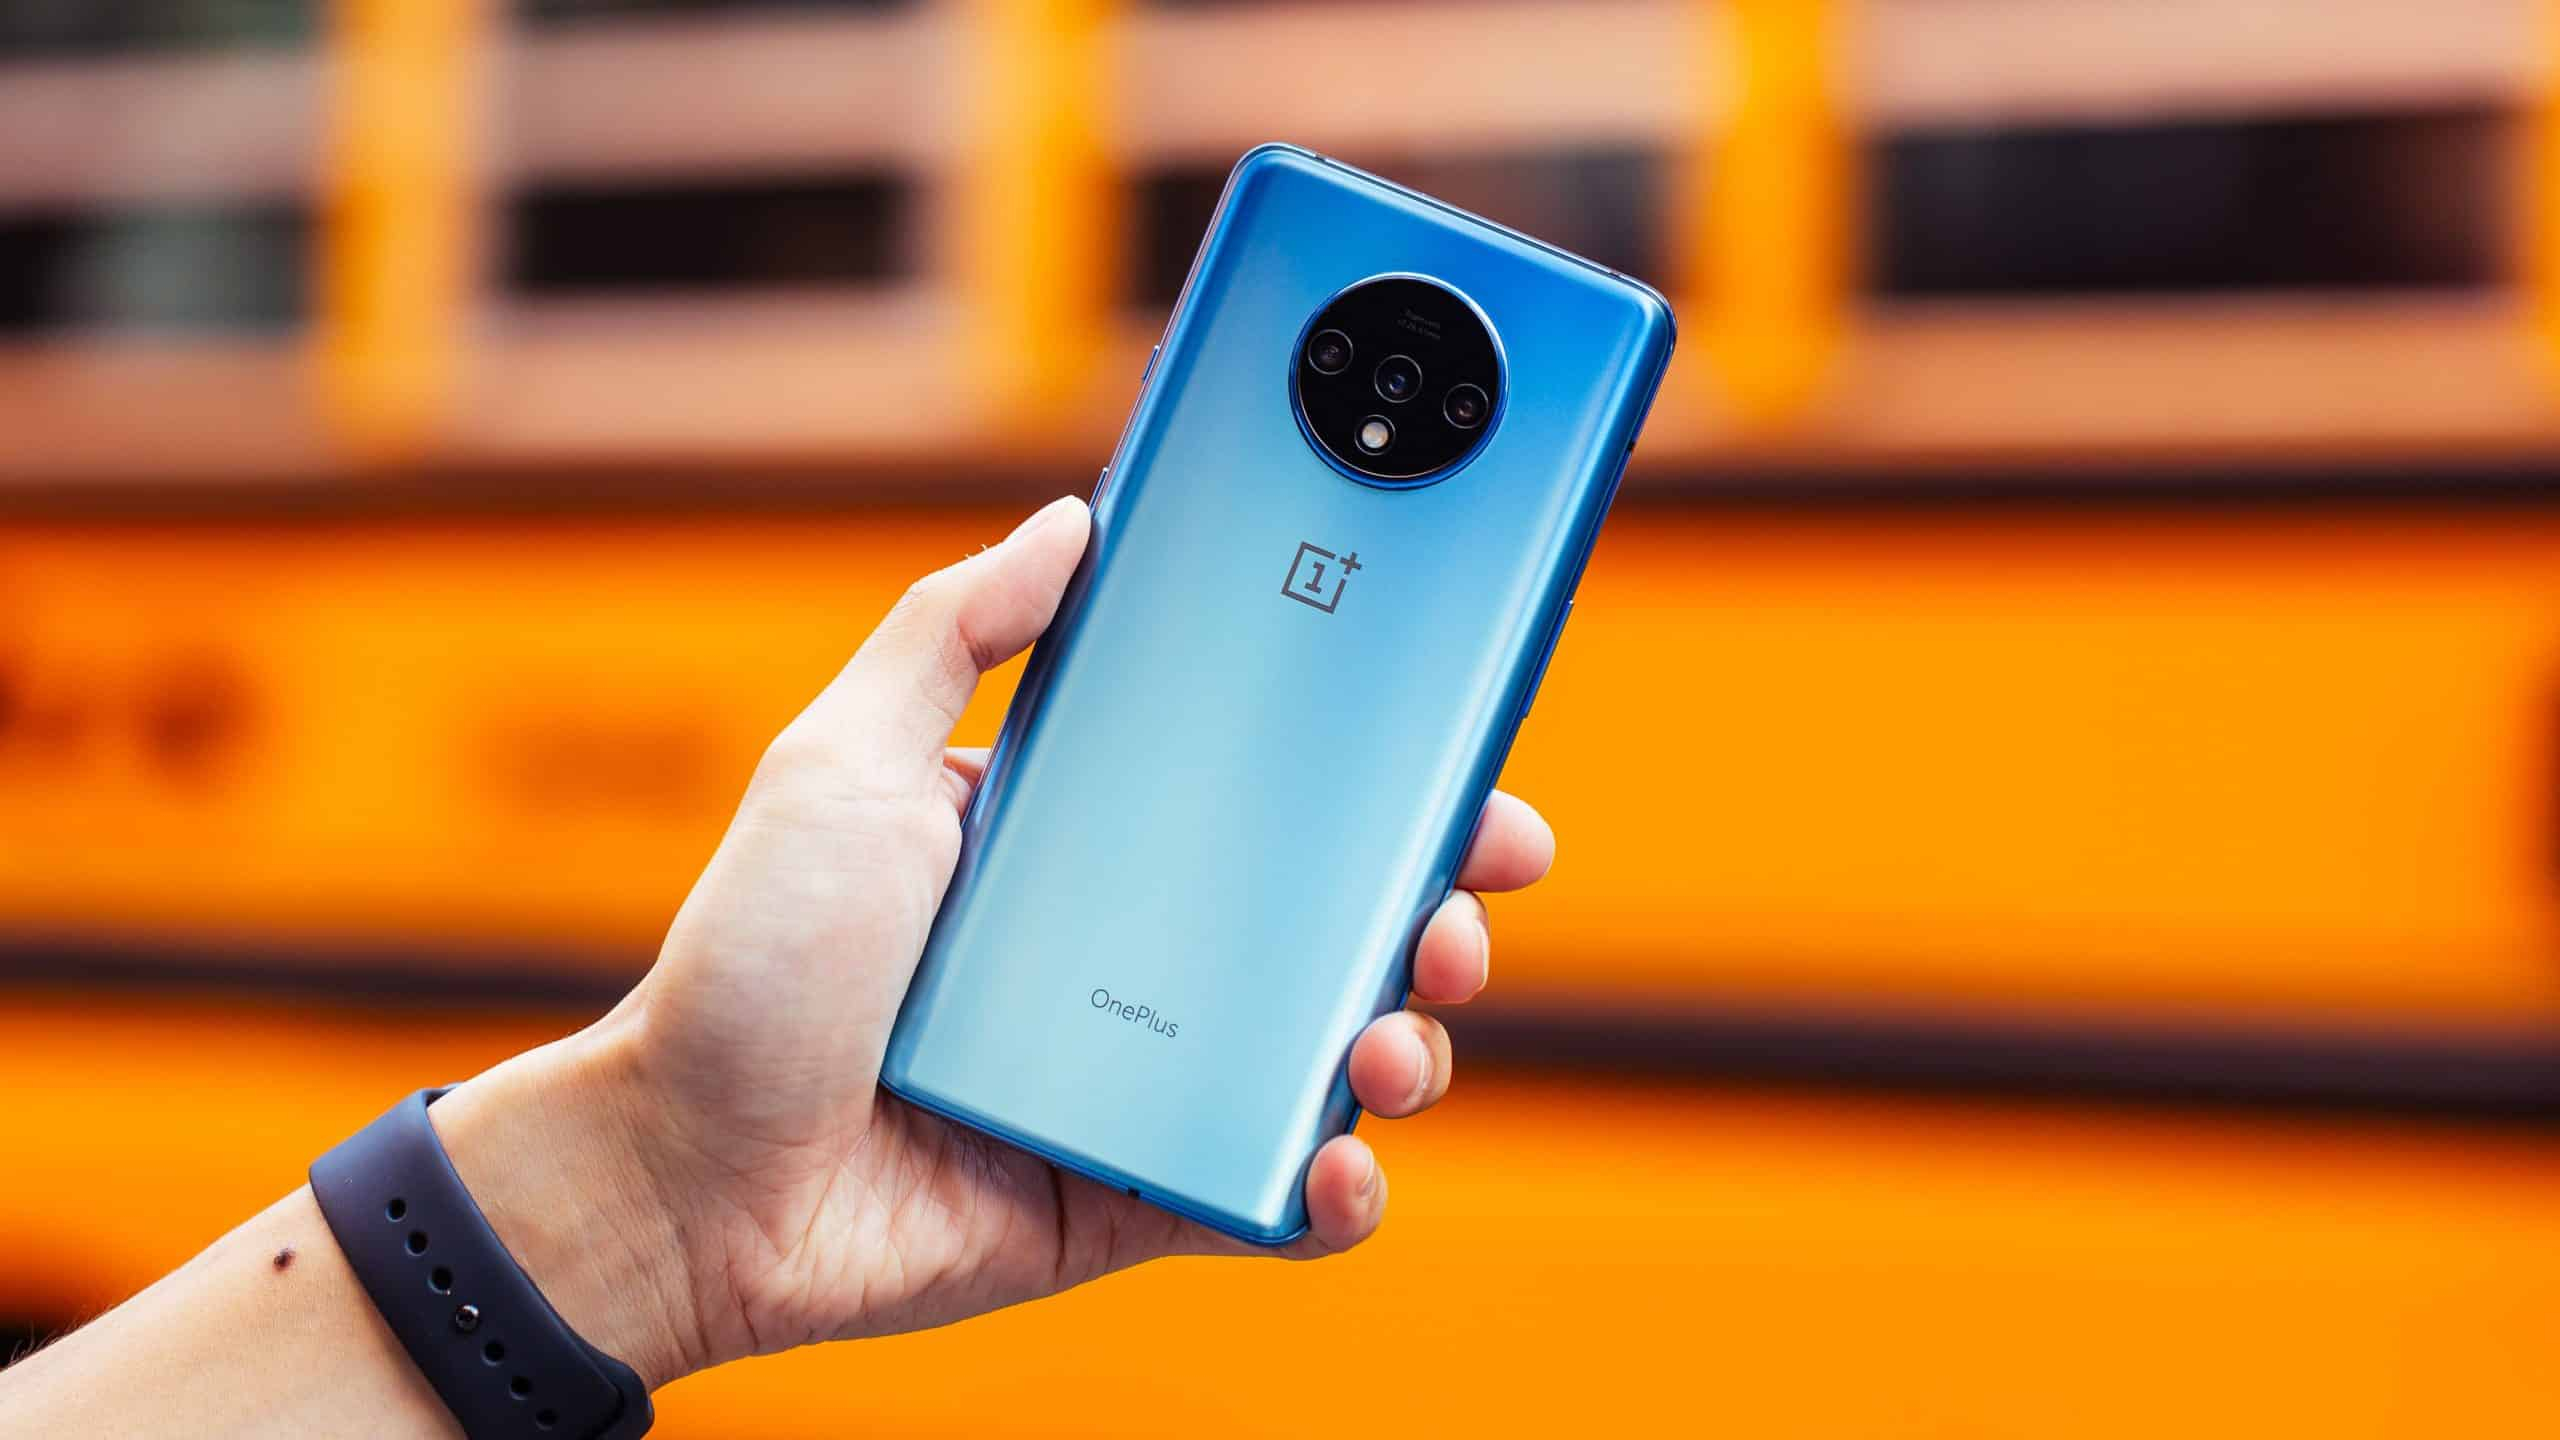 Download Oxygen OS Open Beta 7 for OnePlus 7T and OnePlus 7T Pro